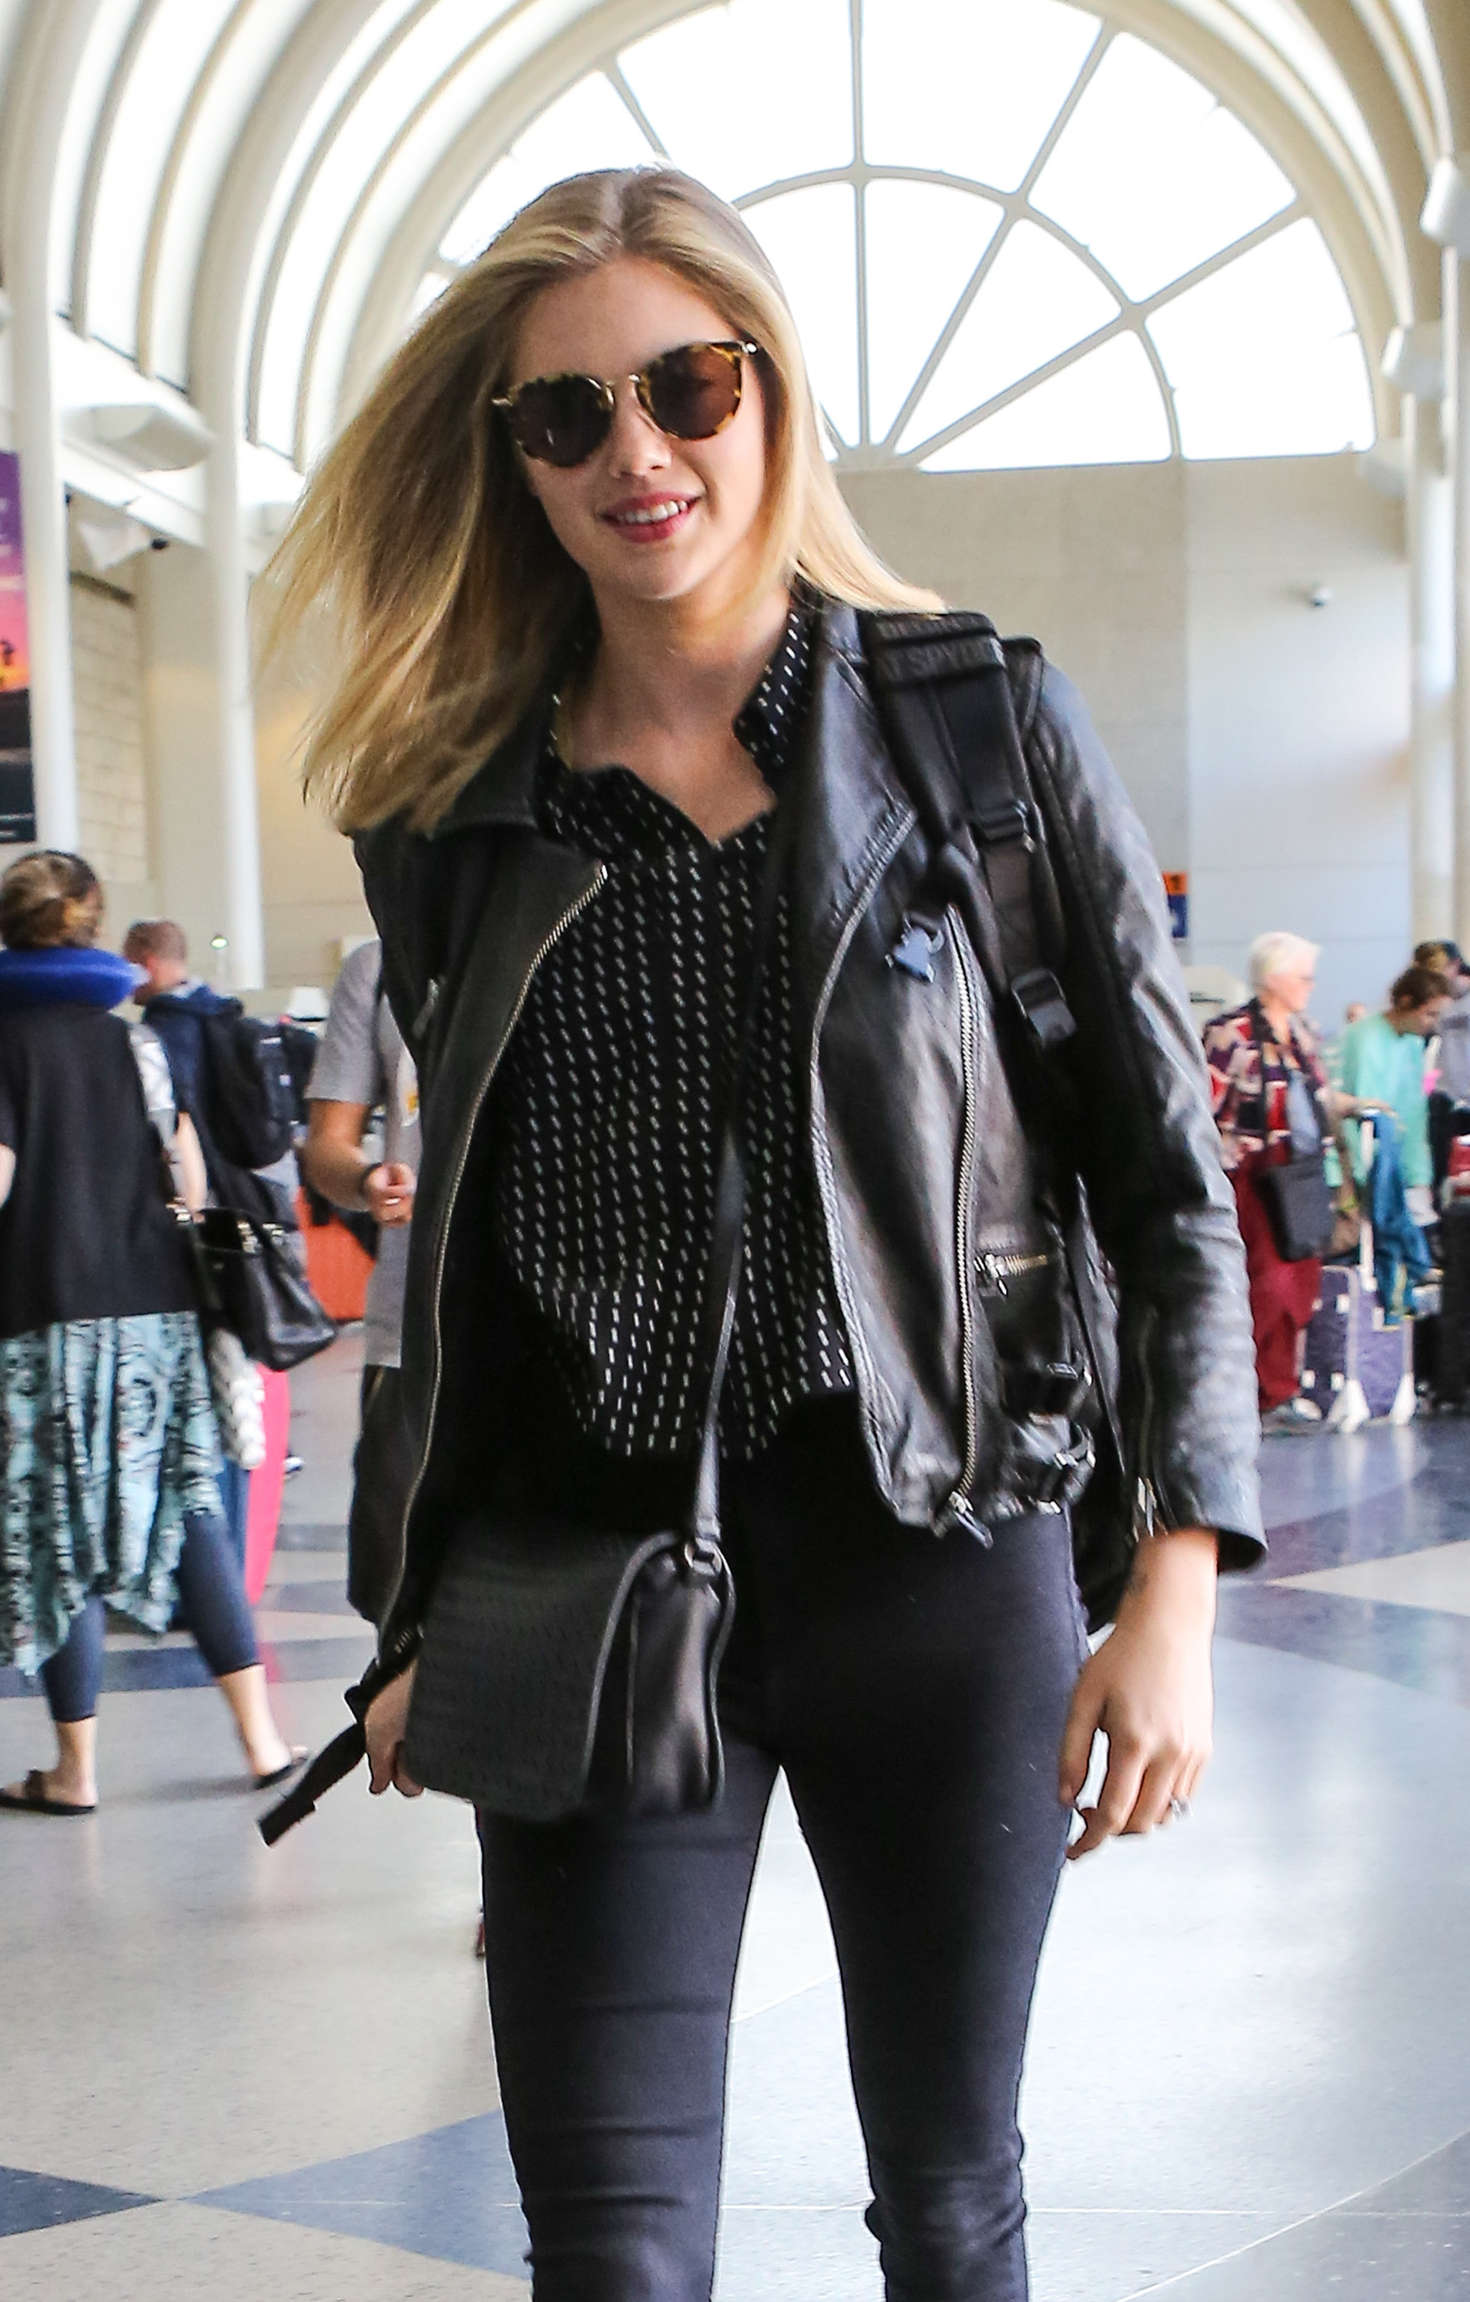 Julianne Hough Images >> Kate Upton in Jeans at LAX Airport in Los Angeles